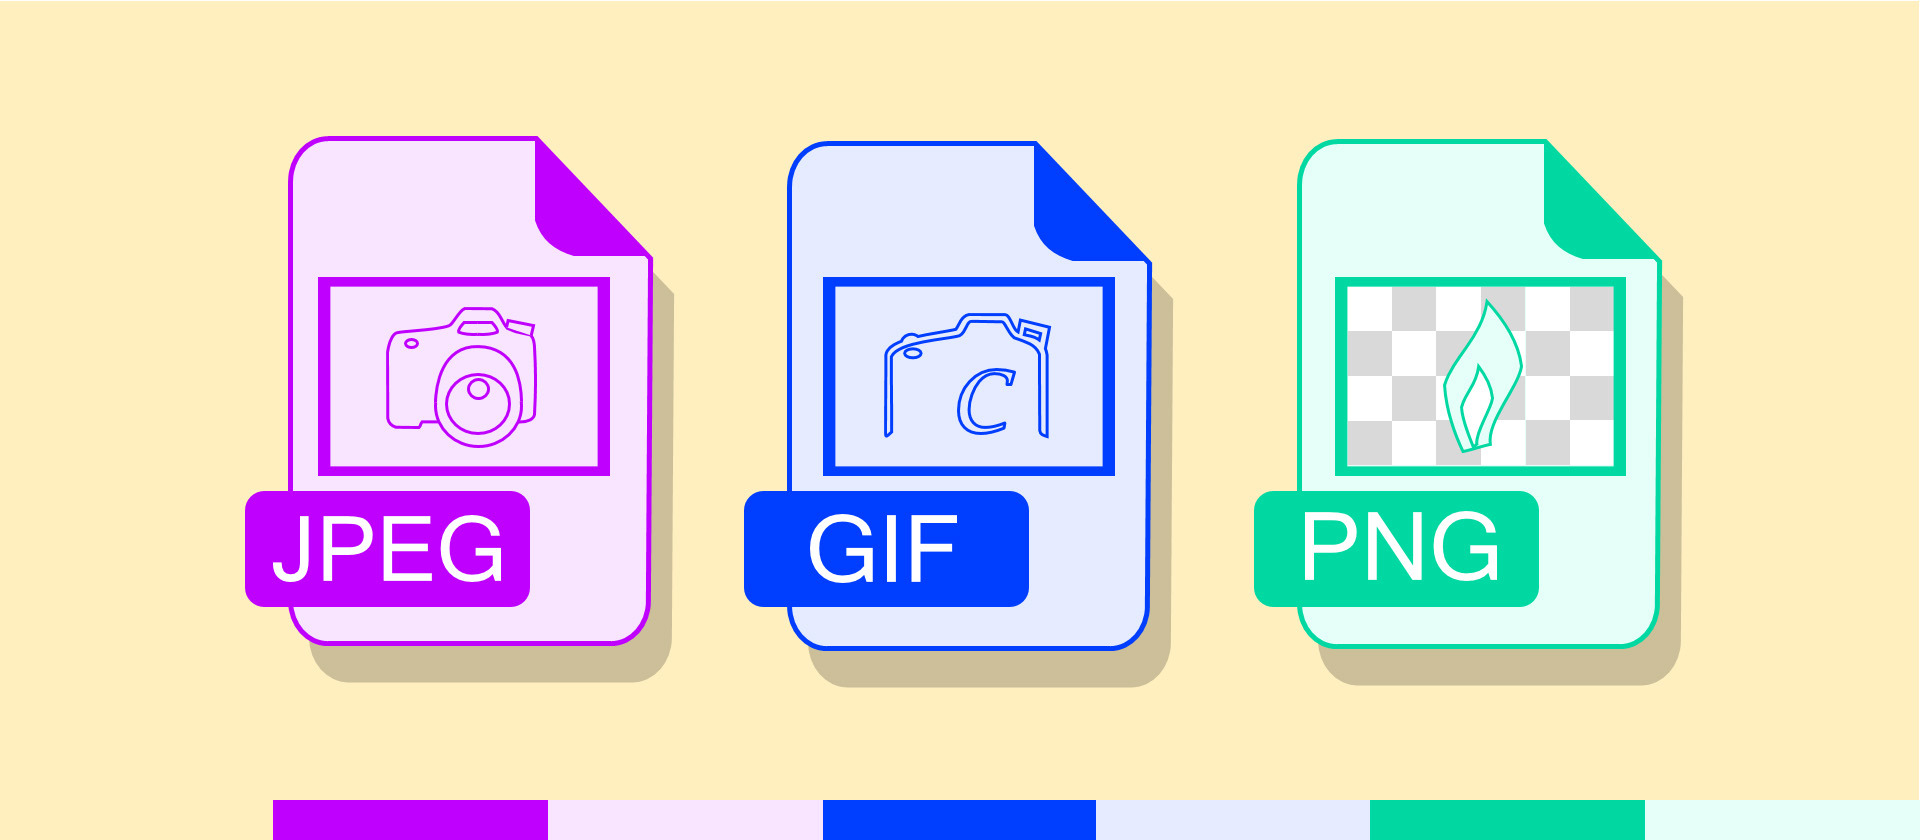 Understanding the different image formats of JPG, PNG, GIF, and BMP.